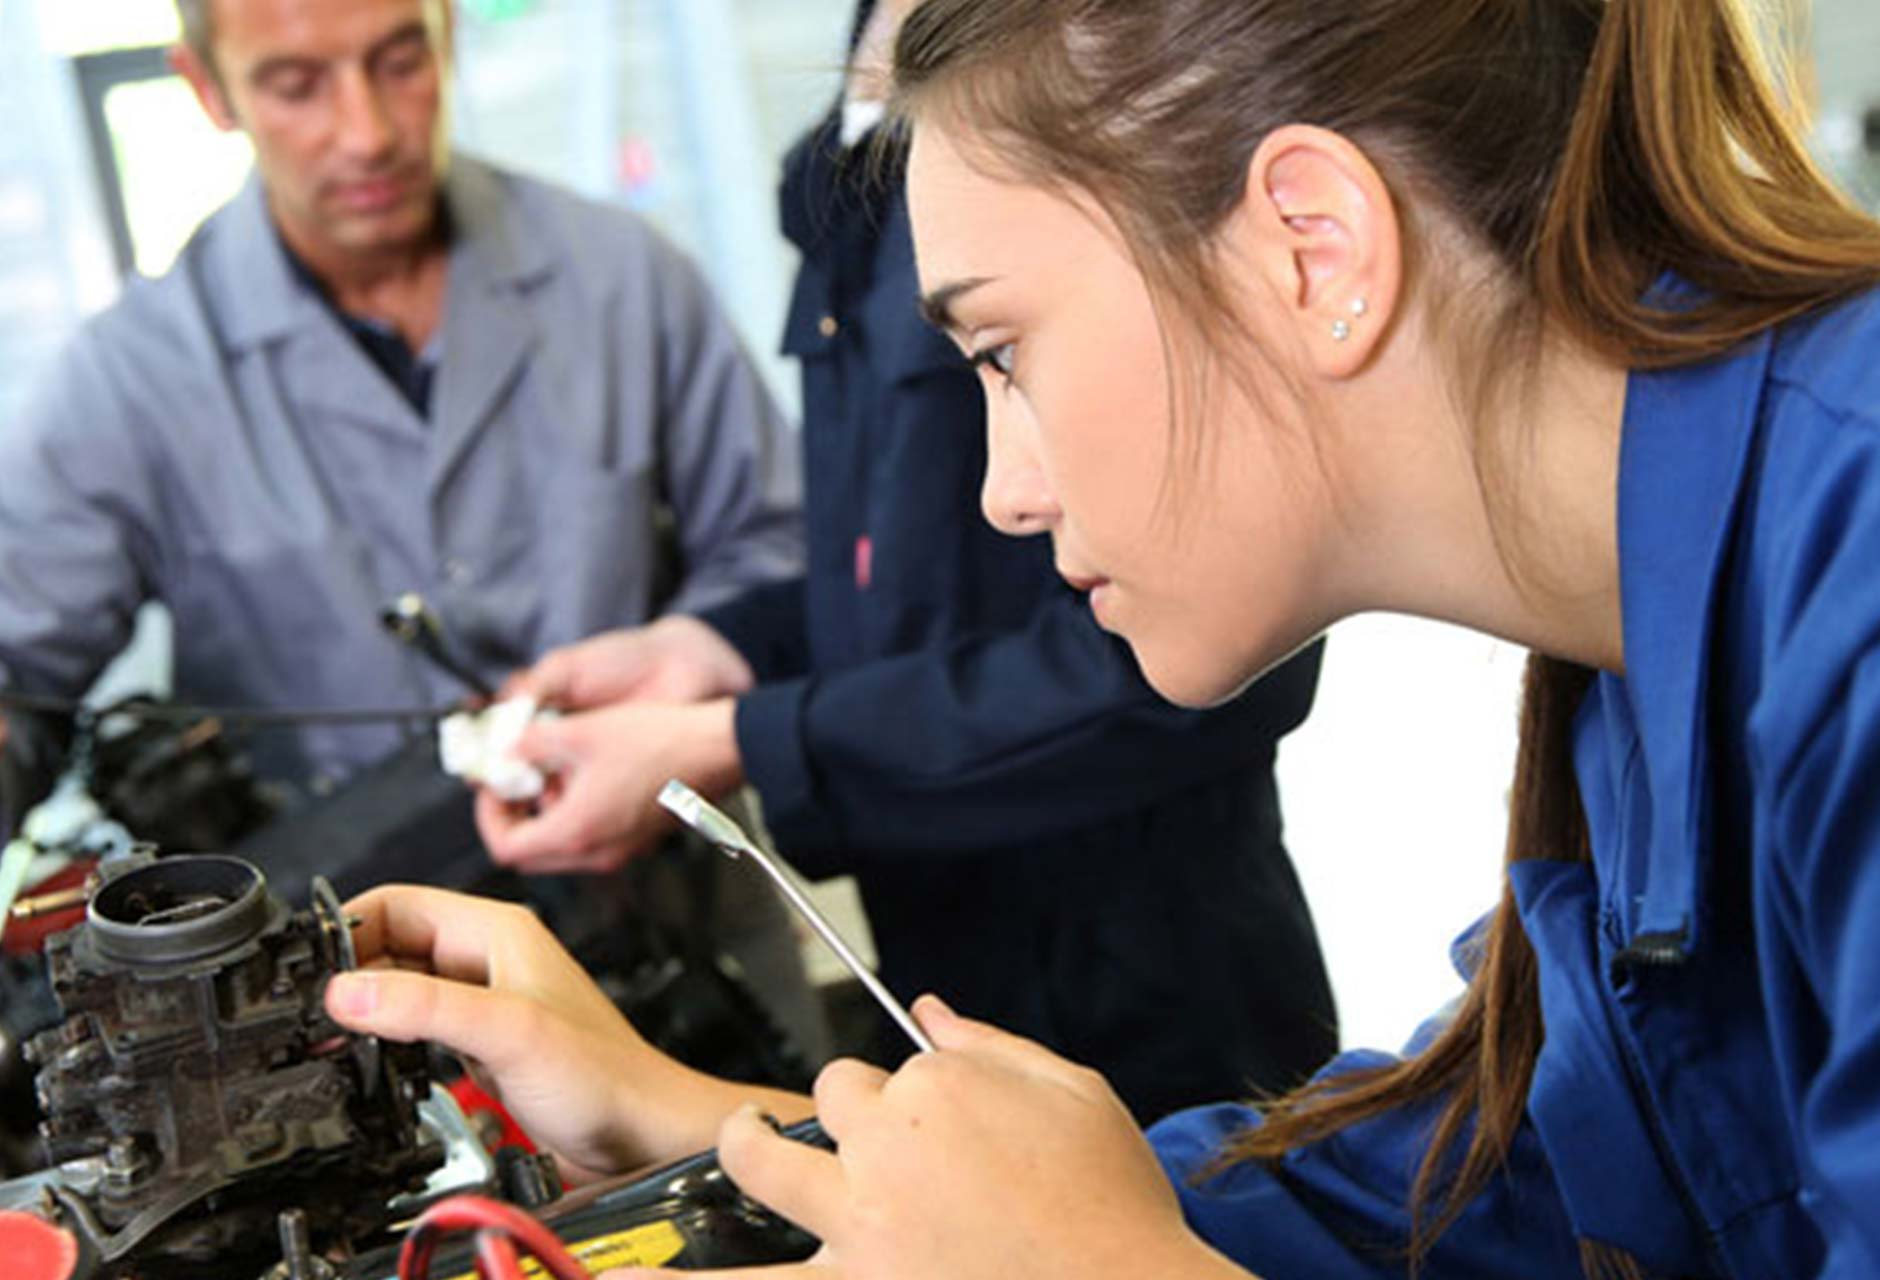 Female Mechanic repairing a carburettor on a car engine